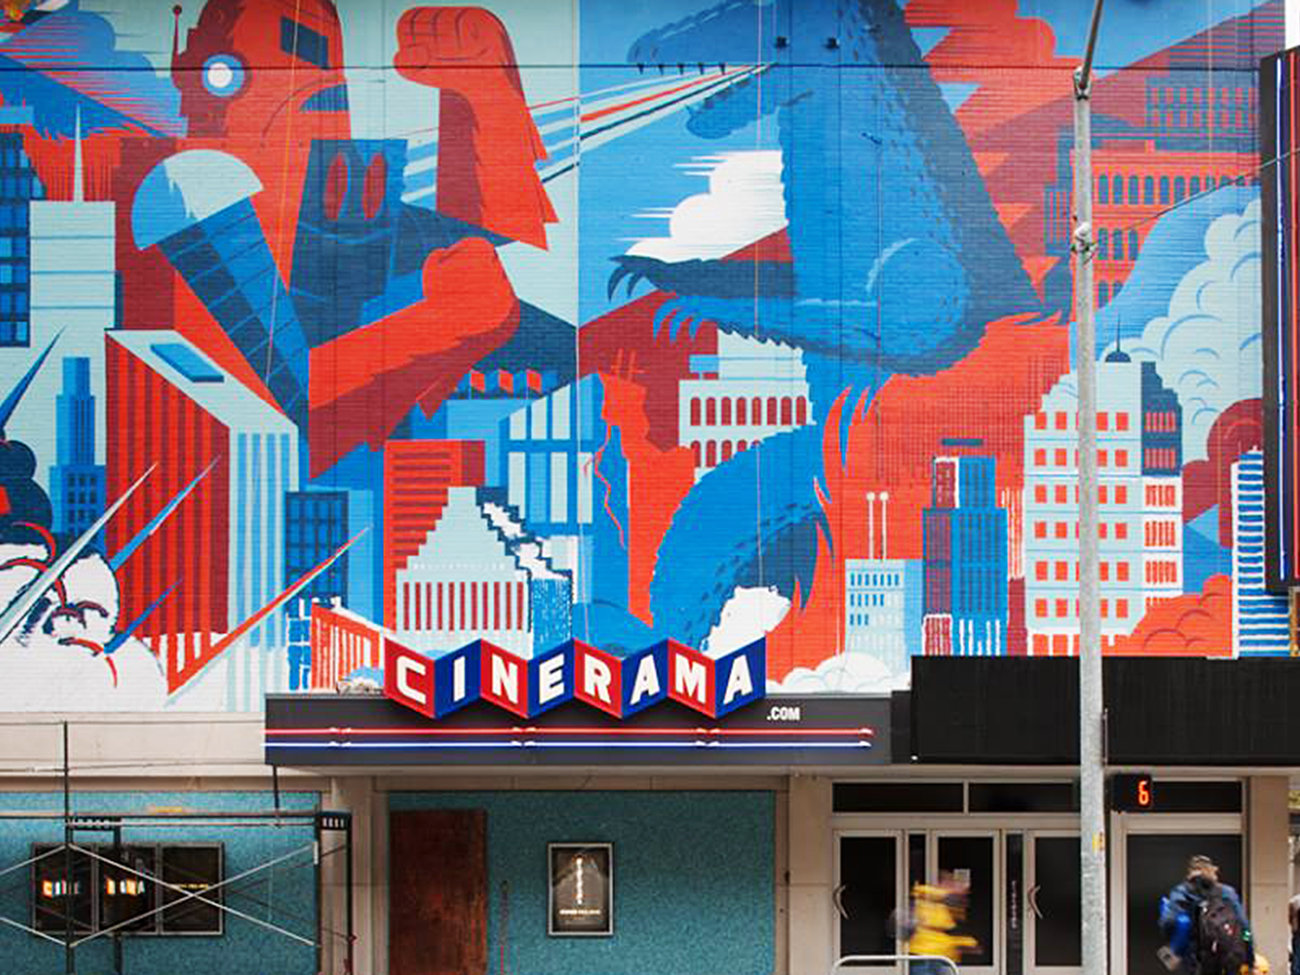 Cinerama Movie Theater in Seattle